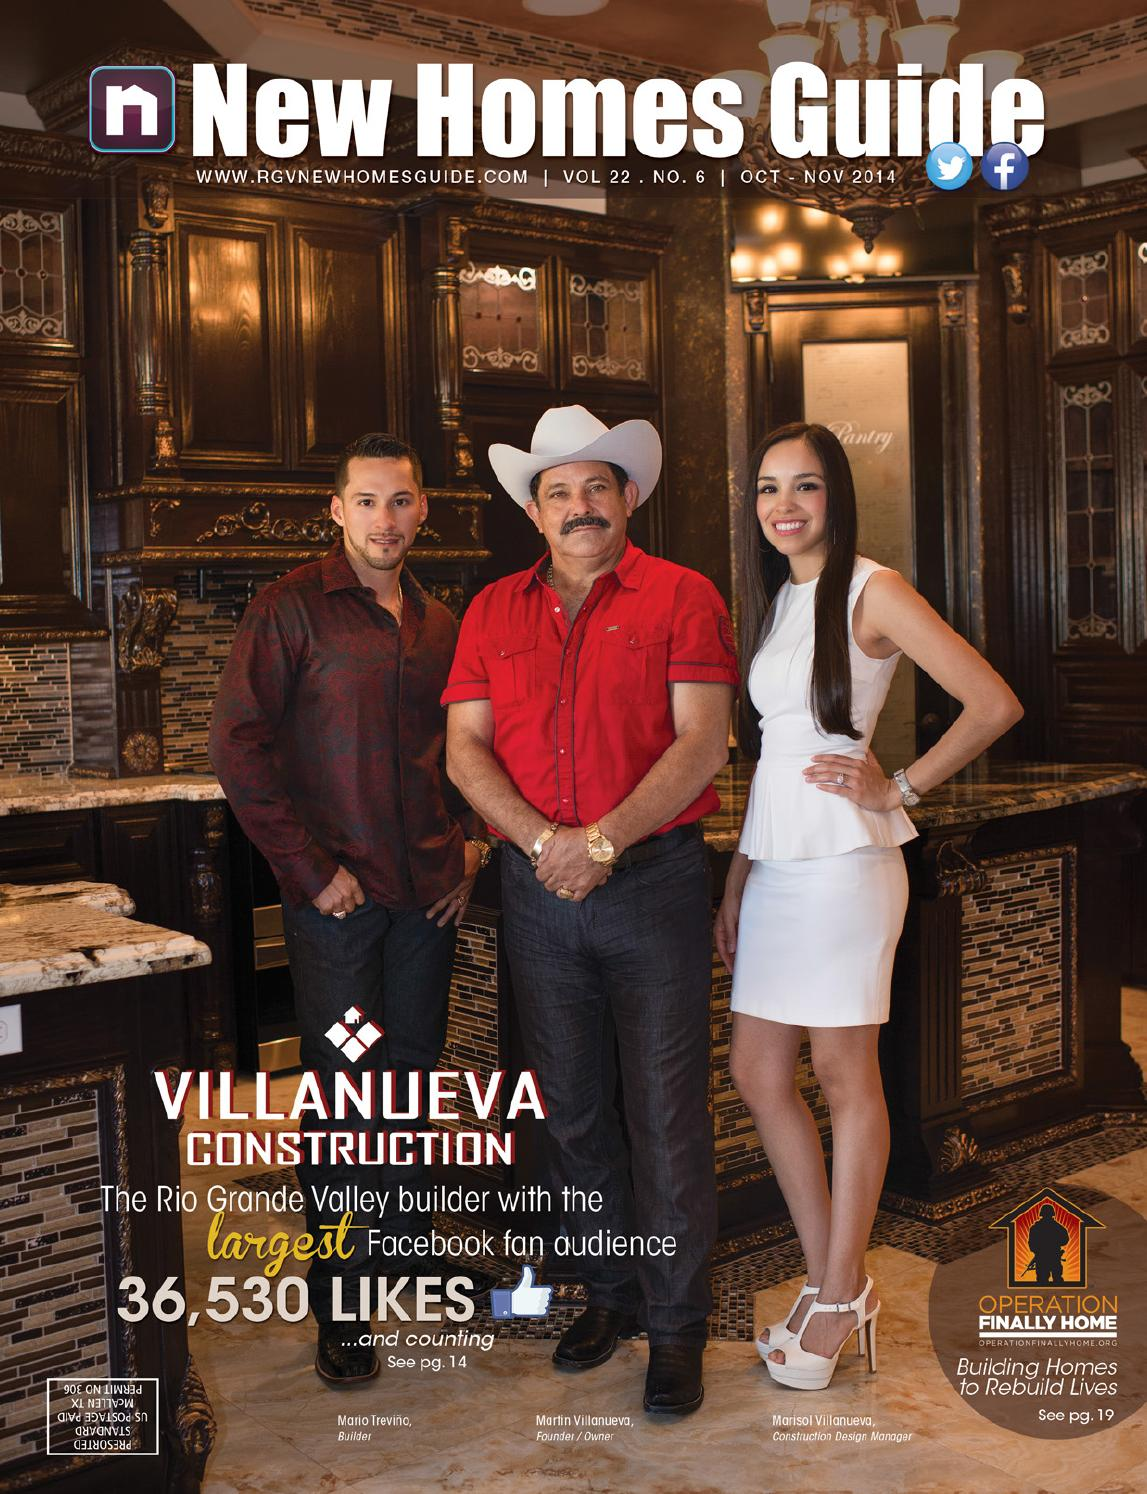 Best Kitchen Gallery: Rgv New Homes Guide Vol 22 No 6 Oct Nov 2014 By New Homes of Keystone Homes Mcallen Tx on rachelxblog.com